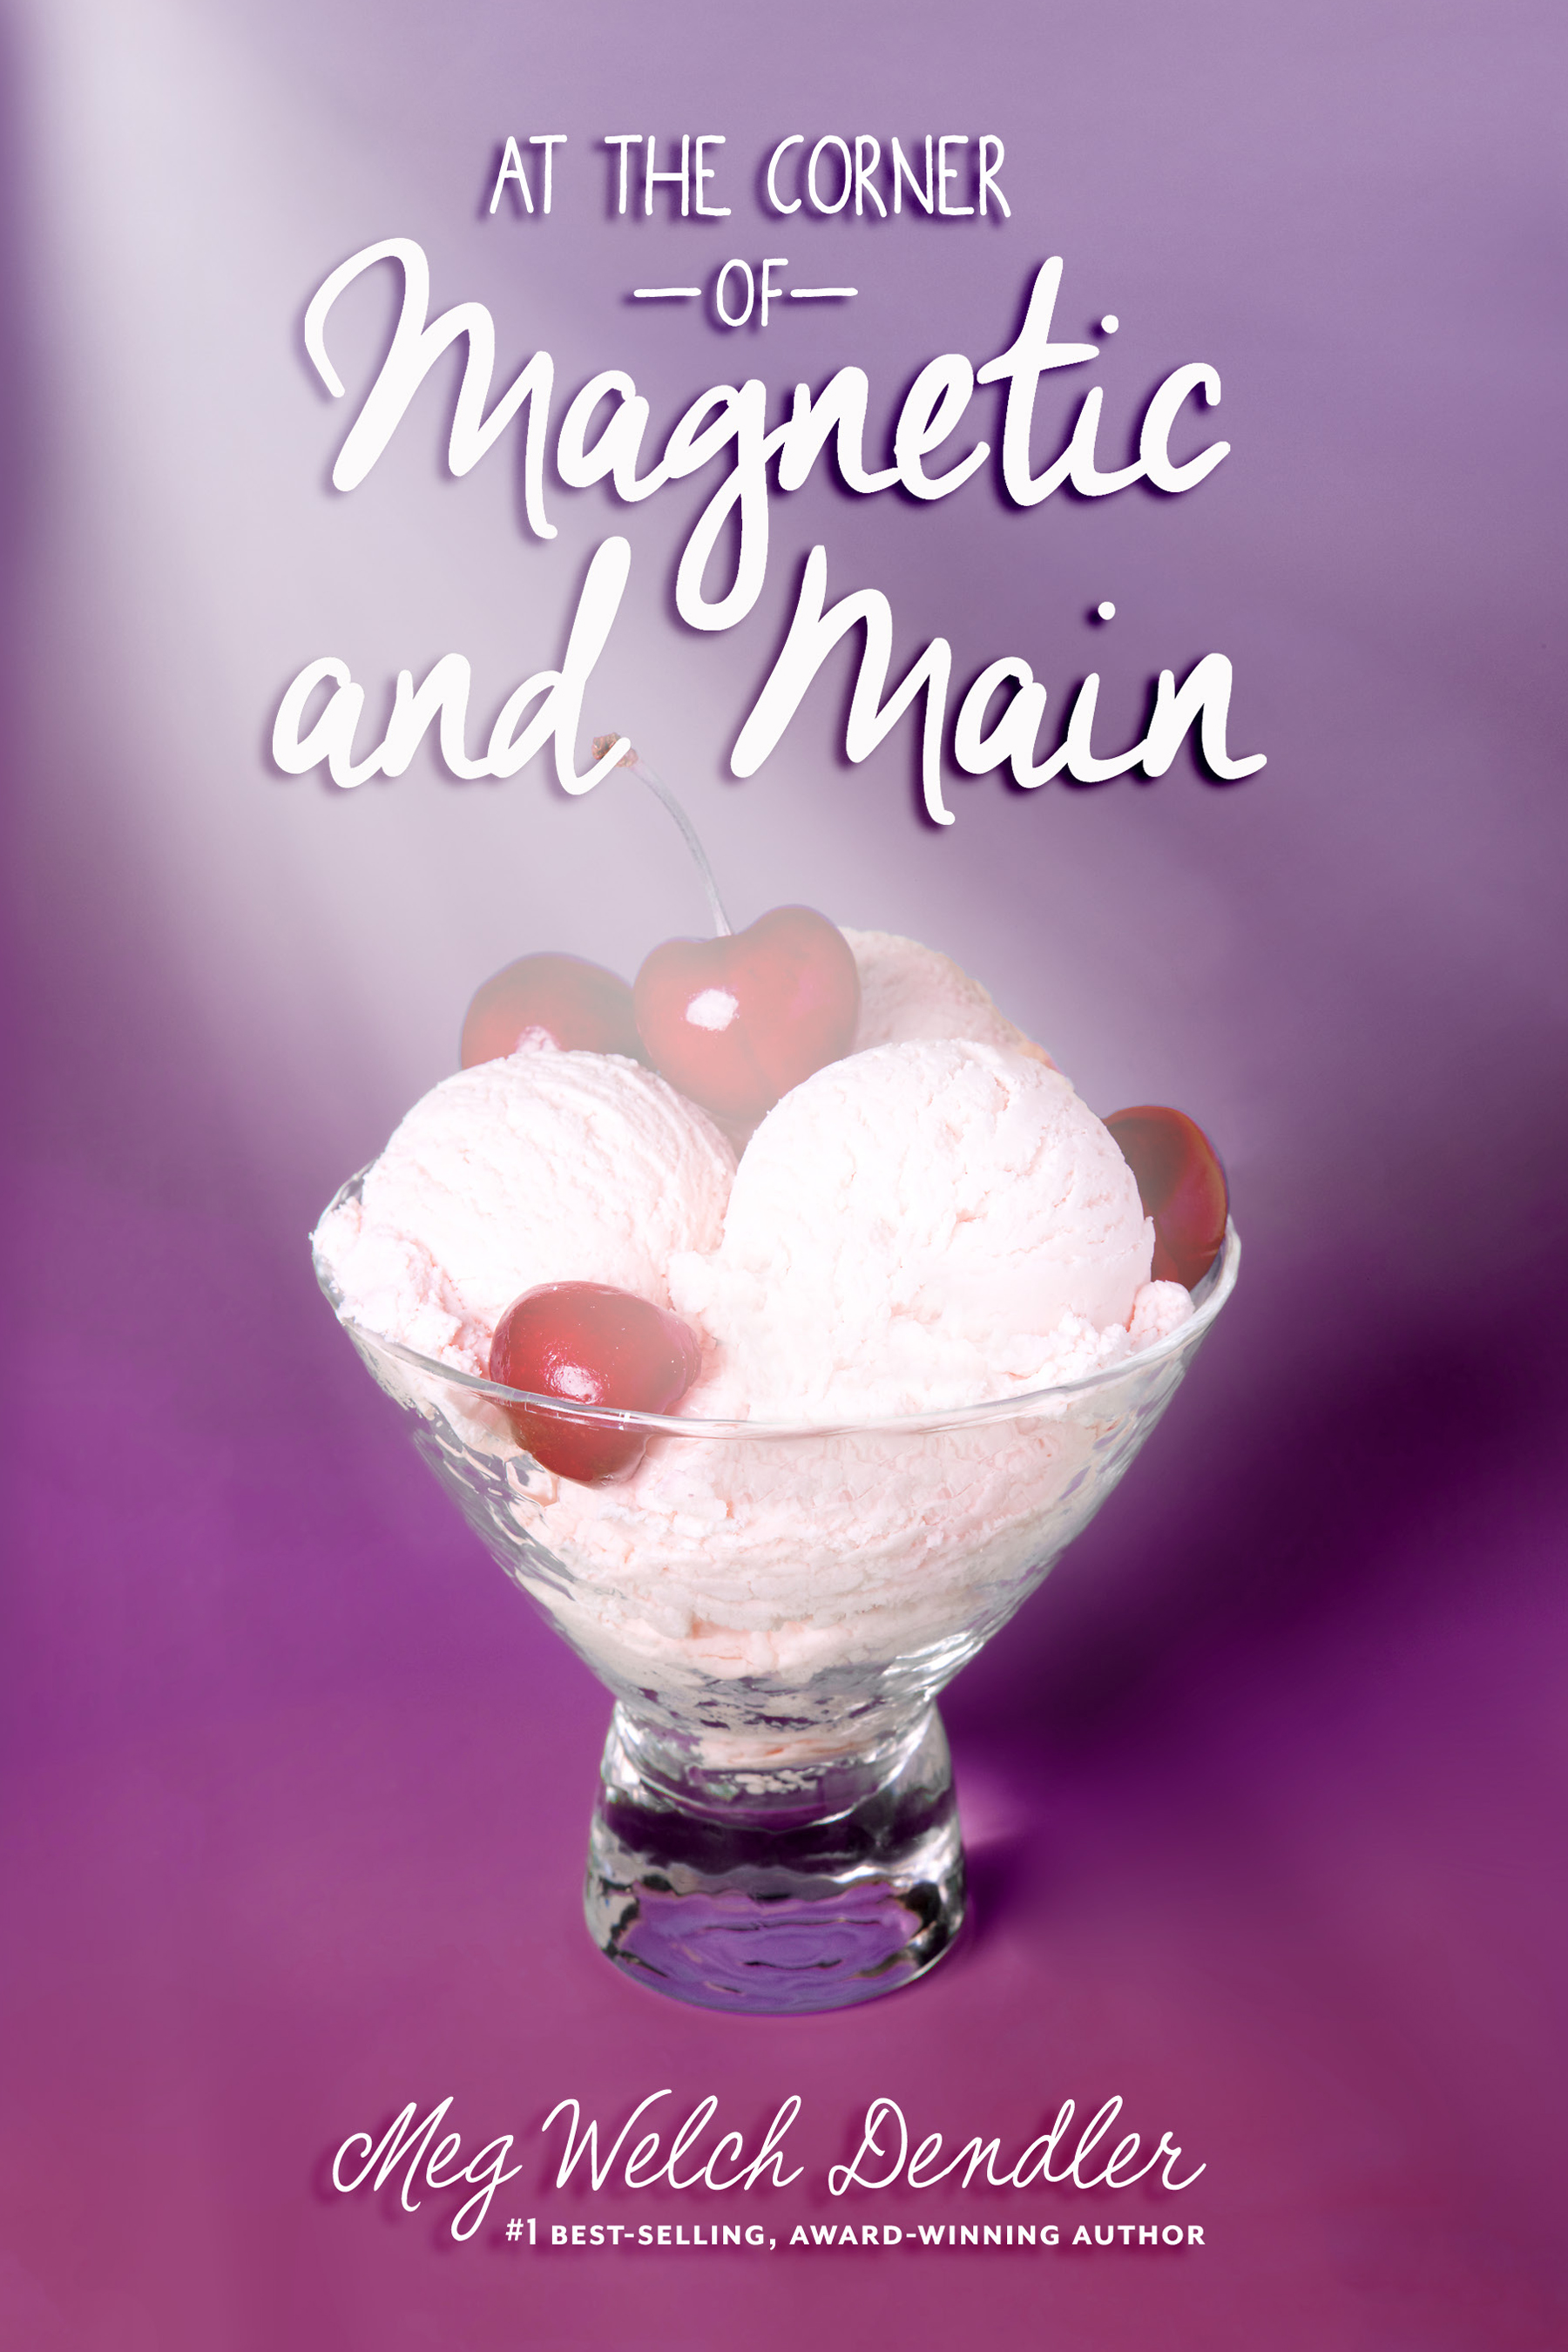 Blog Tour: At The Corner of Magnetic and Main by Meg Welch Dendler | Review and Author Interview